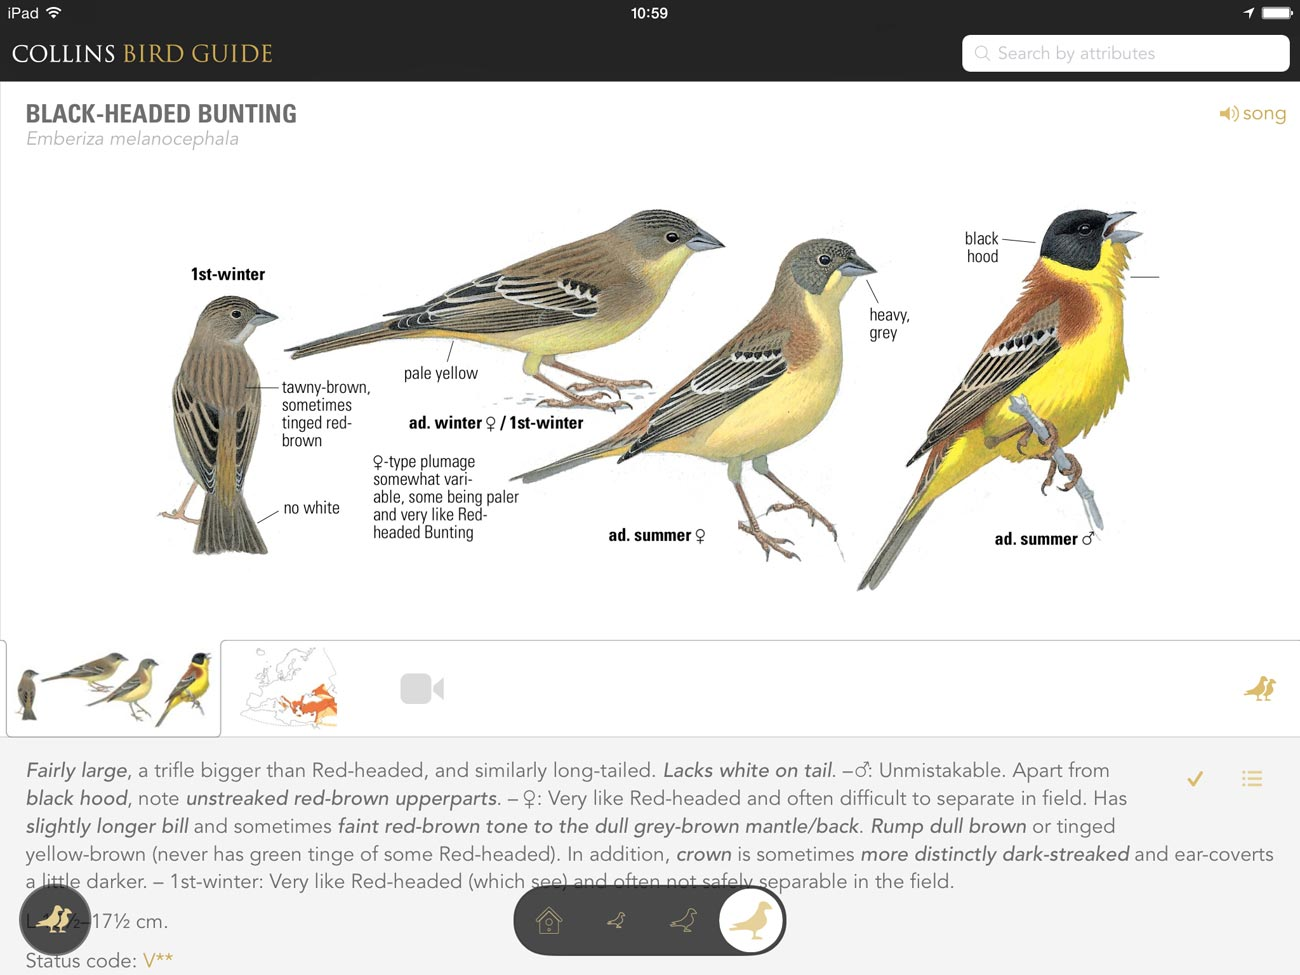 The Collins Bird Guide app is a must-have for serious birdwatchers in the UK and Europe.